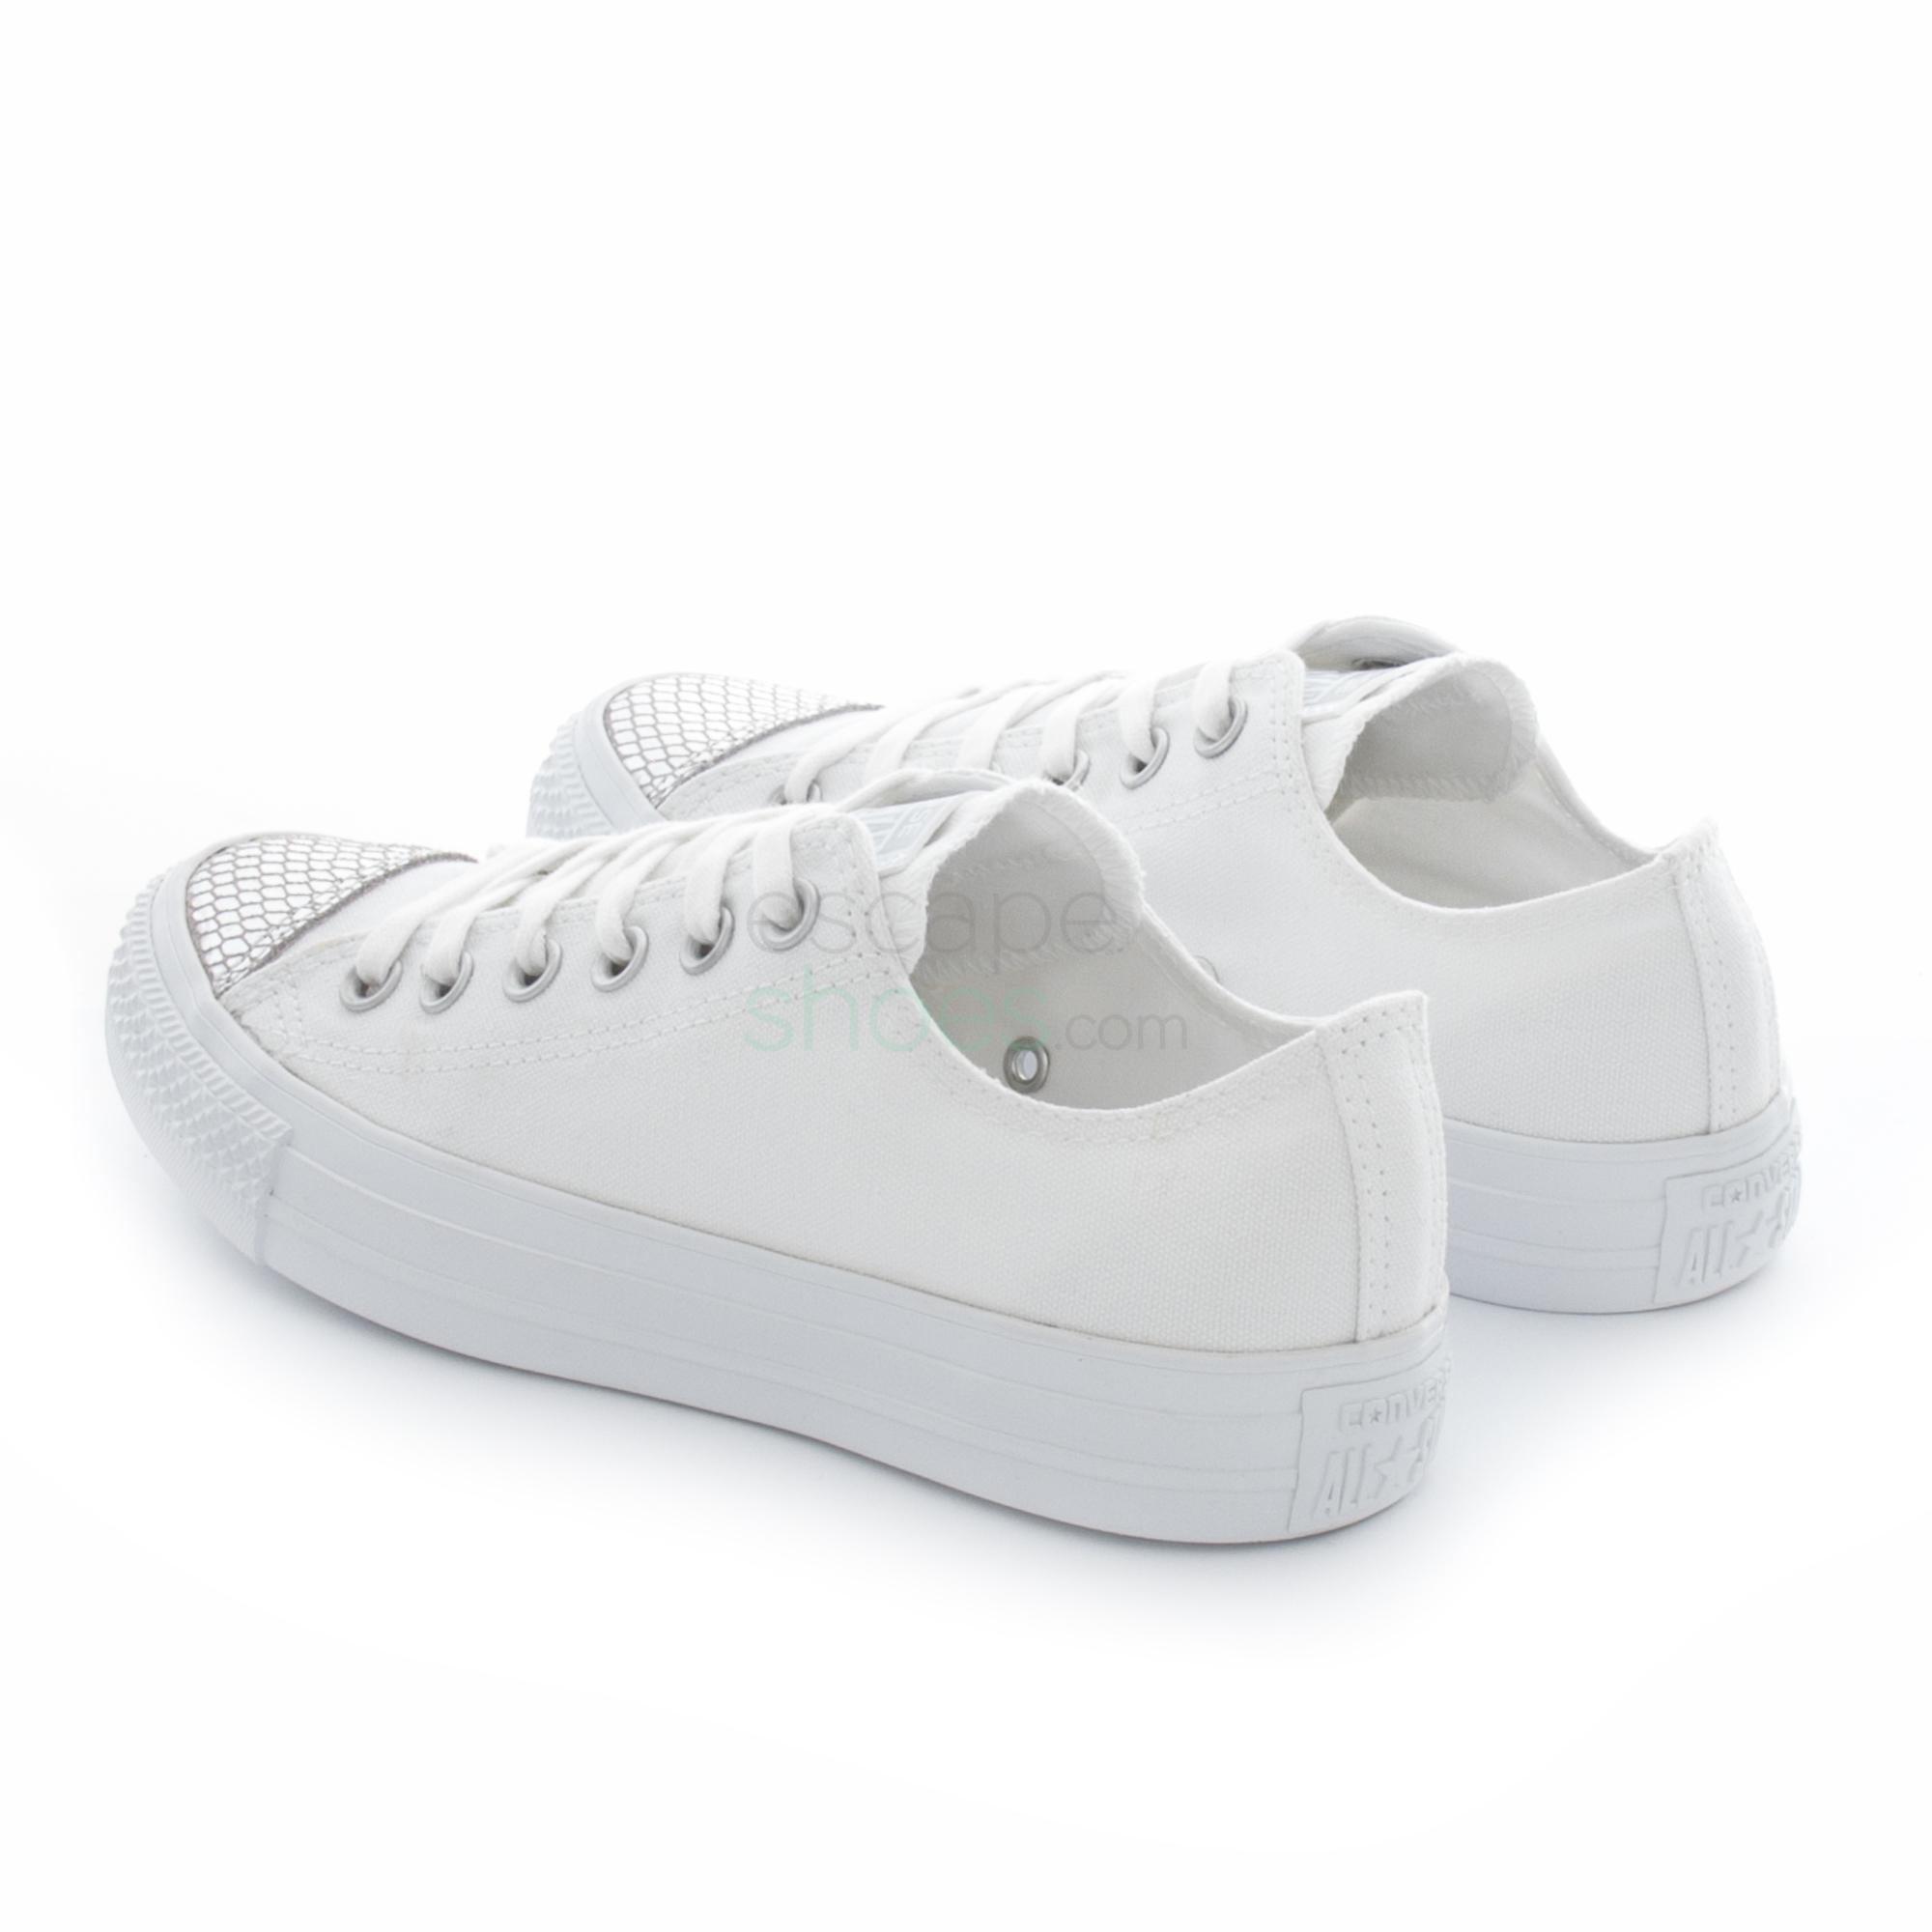 Sneakers CONVERSE Chuck Taylor All Star 555816C White Silver